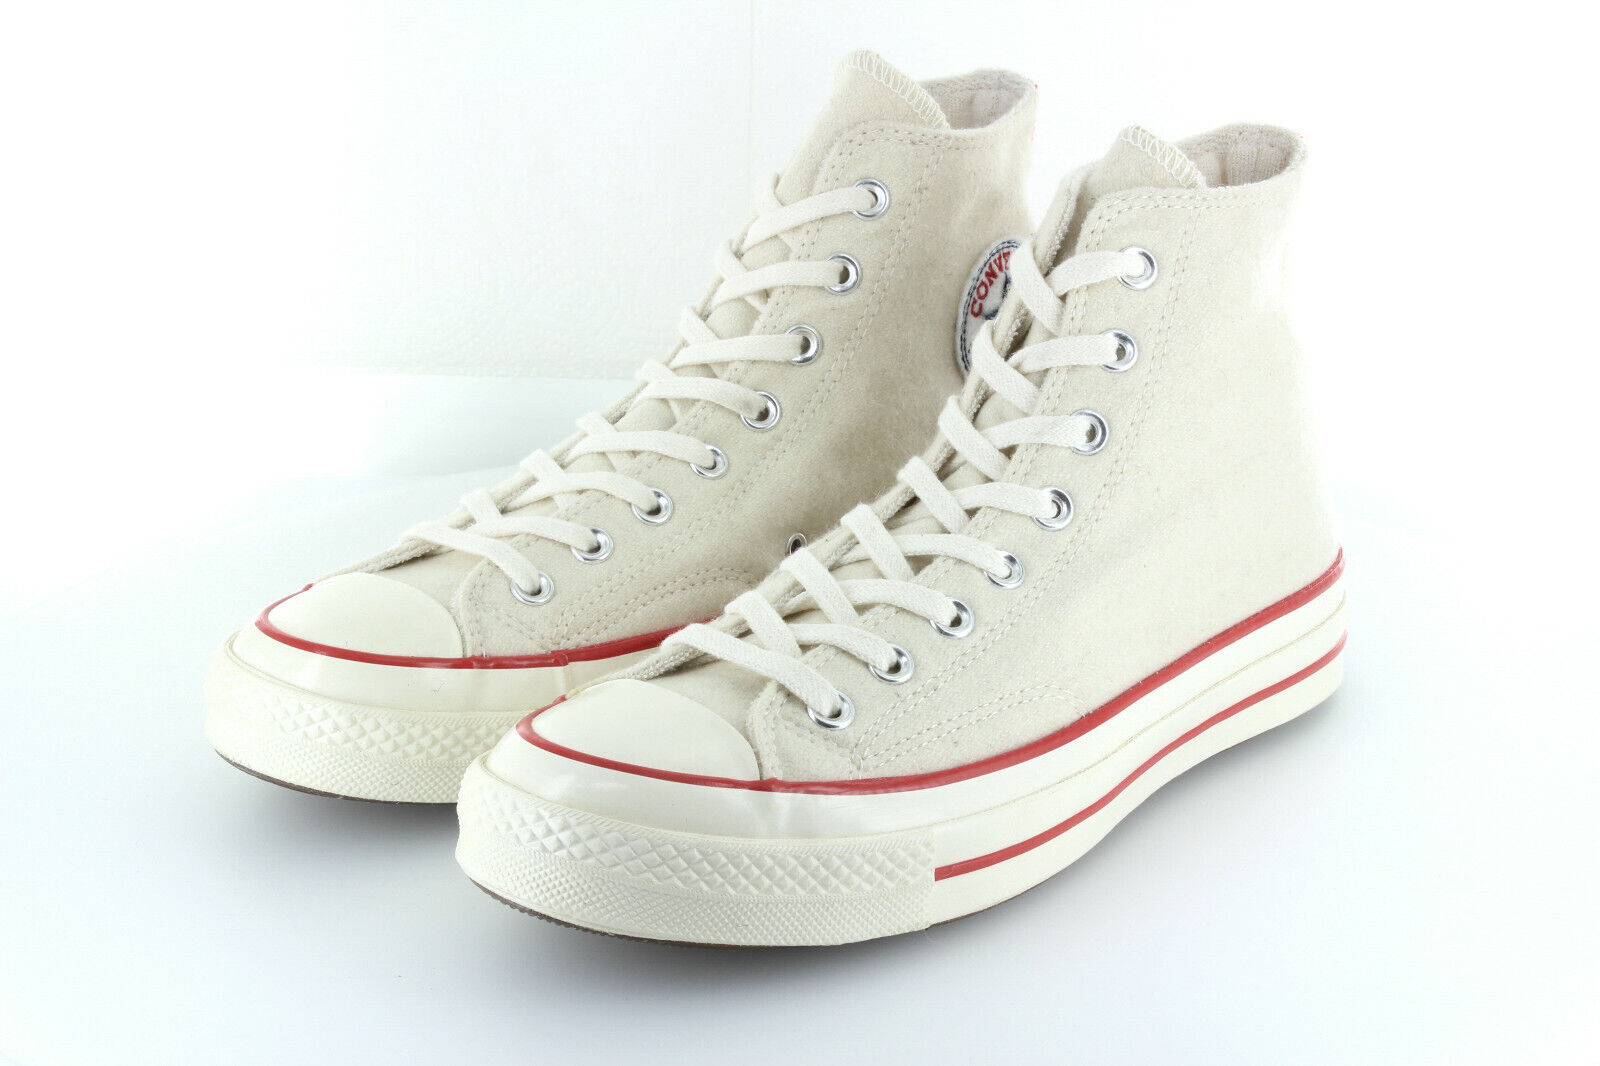 Converse Chuck Taylor AS Hi 70s White Red Wool Limited Edition 42,5 43,5 US9